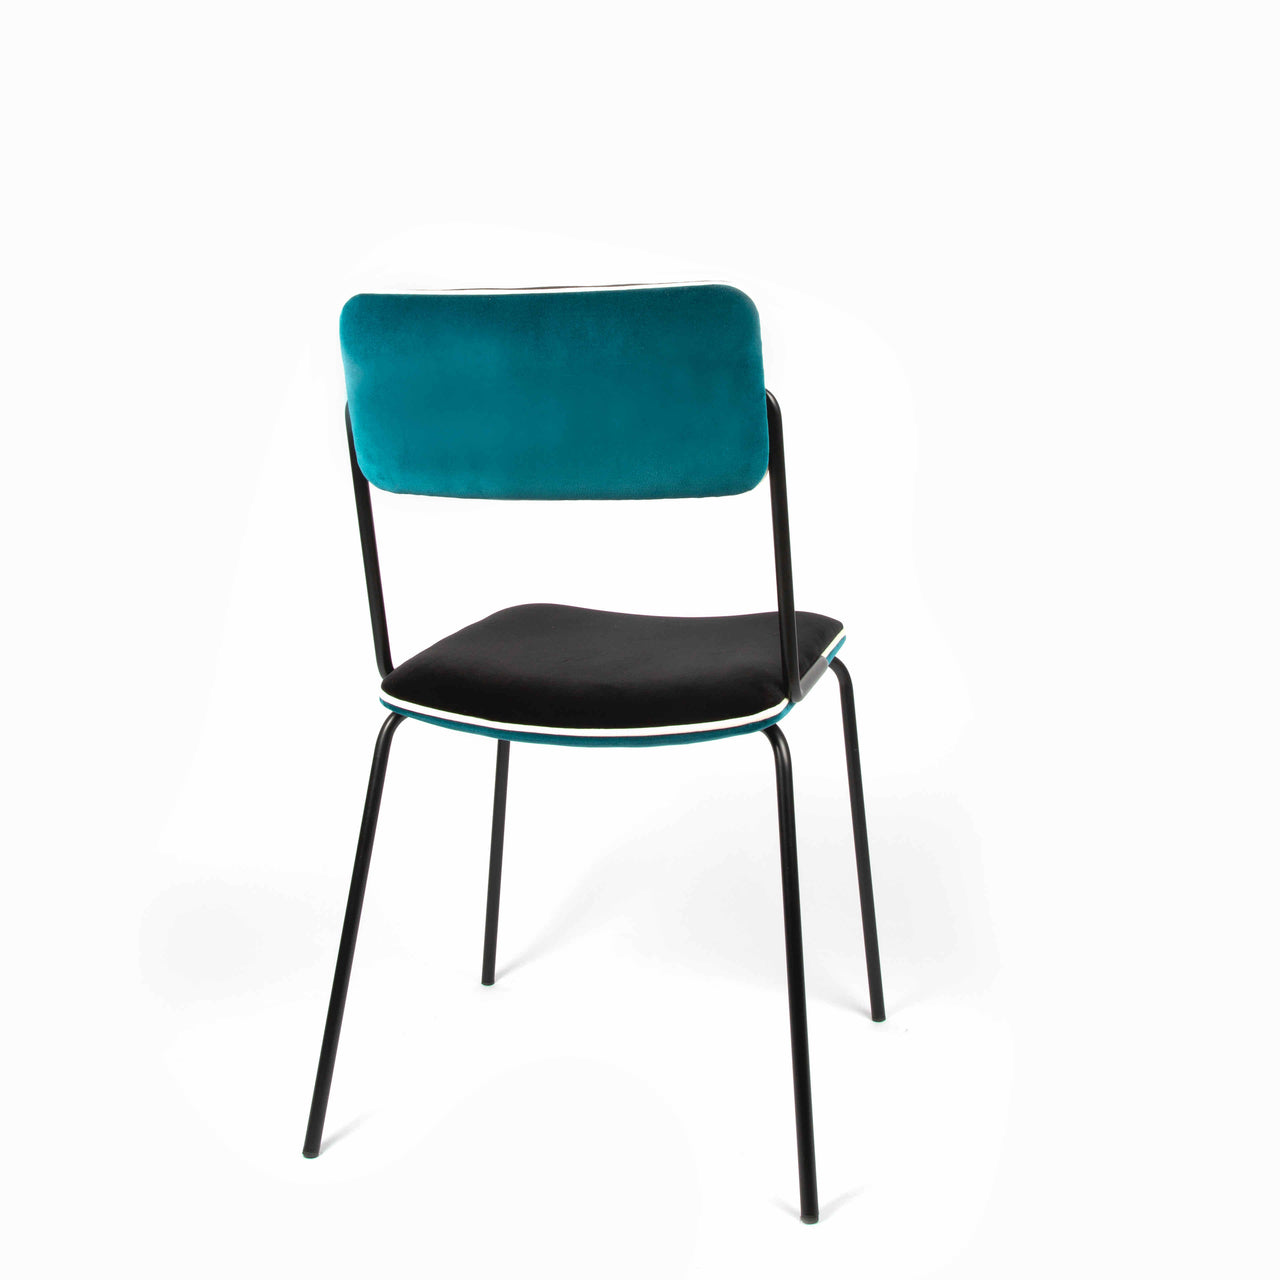 Maison Sarah Lavoine create their first dining chair Double Jeu. The chair's simple and airy silhouette is balanced by its soft curves and colourful velvet | colour:Sarah Blue and Black